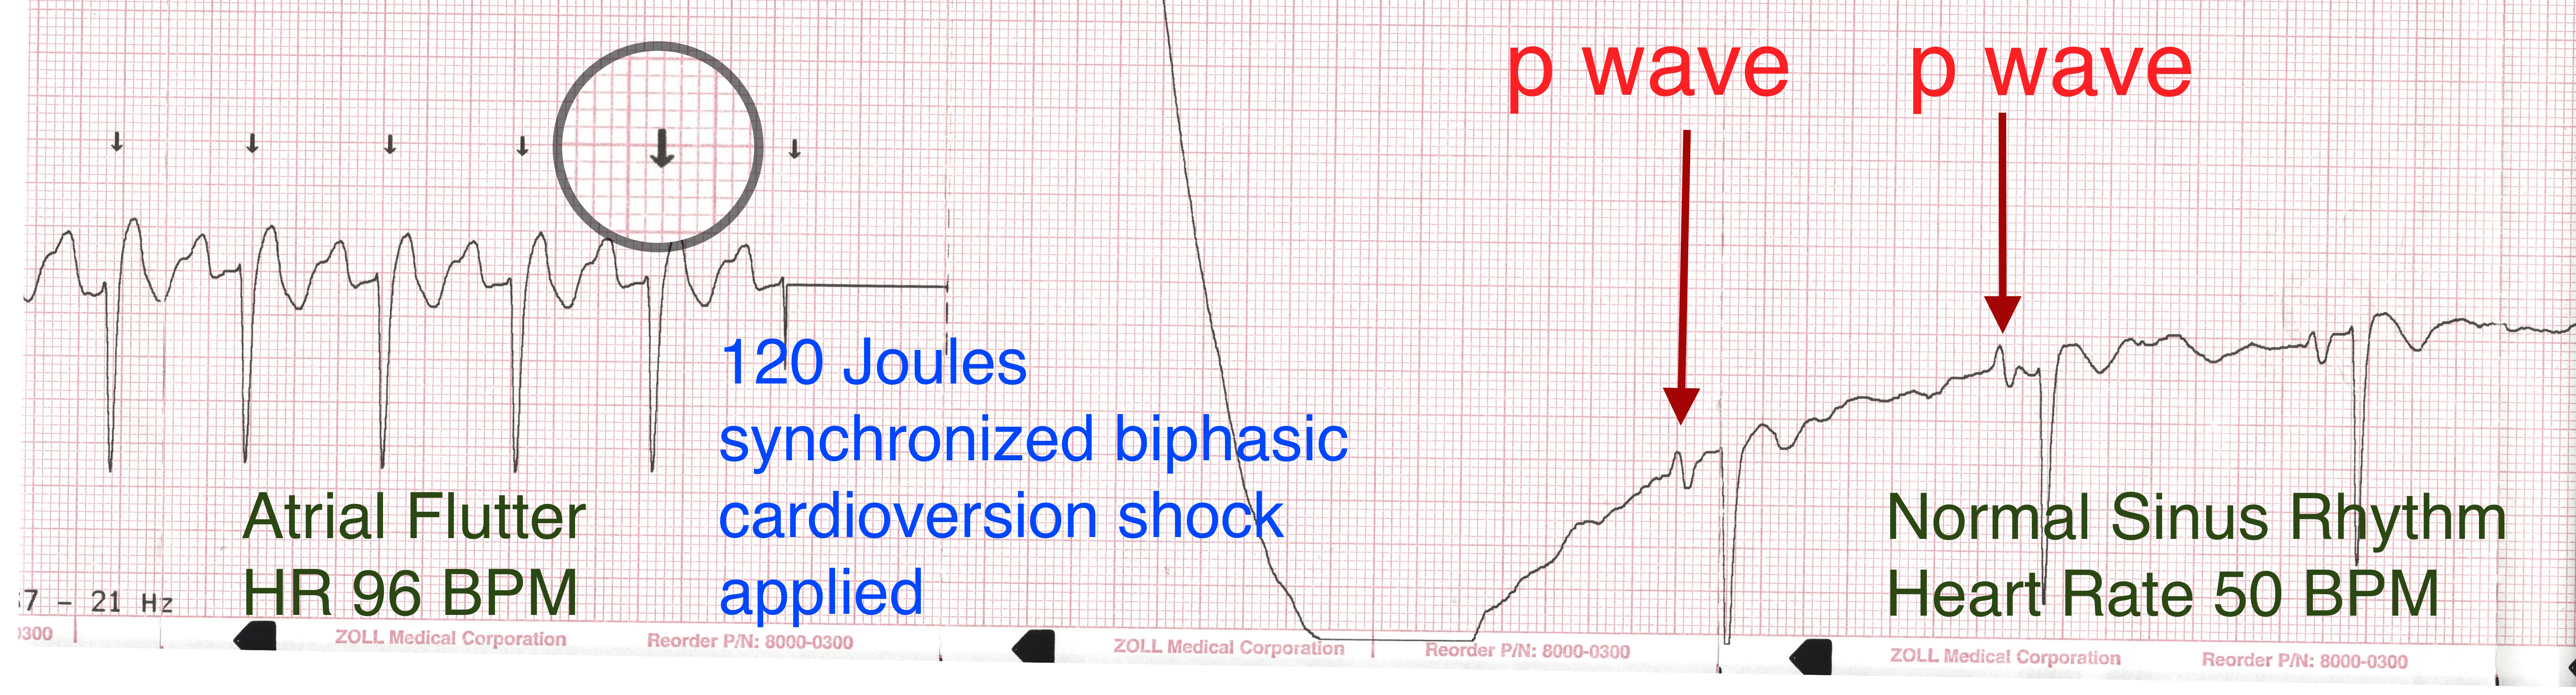 Atrial Fibrillation: How Many Times Can You Shock The Heart